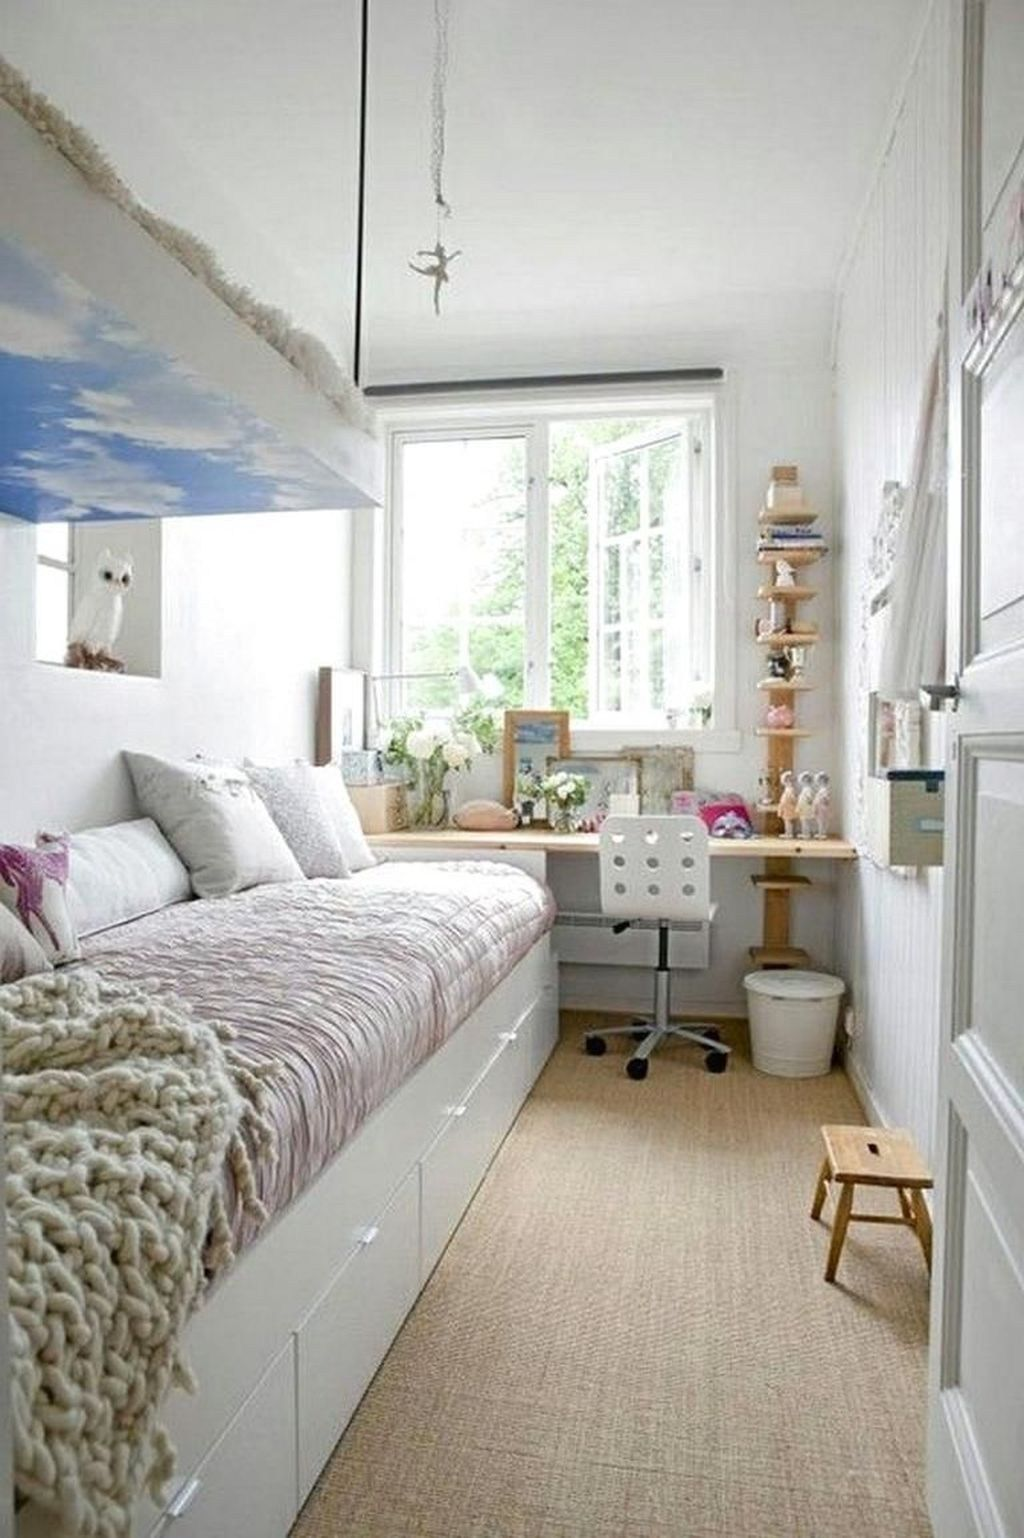 40 Cute Bedroom Ideas For Small Rooms (With images) | Tiny ... on Small Tween Bedroom Ideas  id=78052